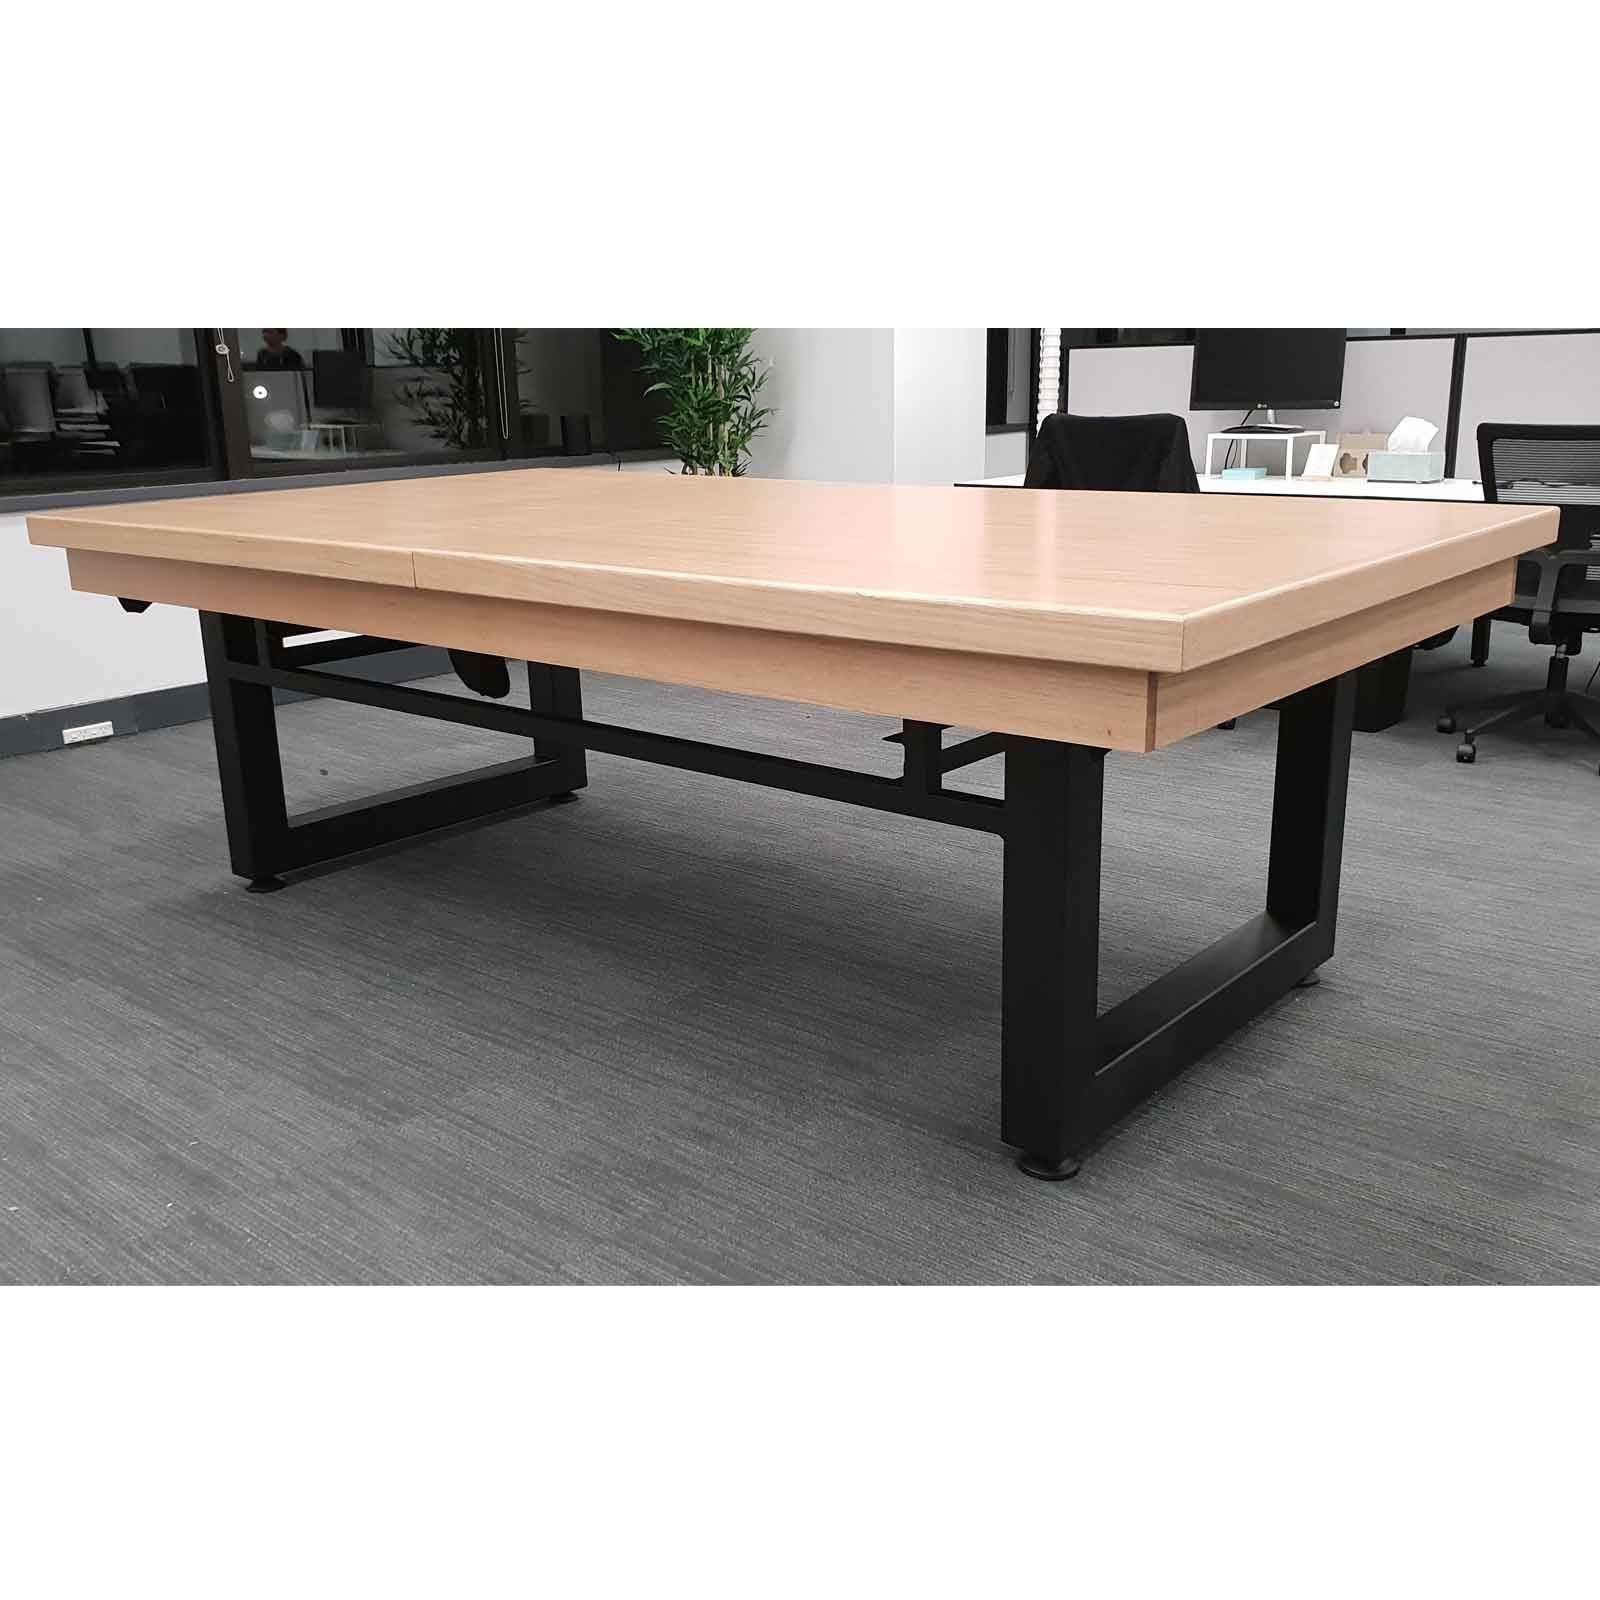 7 Foot Slate Odyssey All In One Pool Dining Table Pool Table